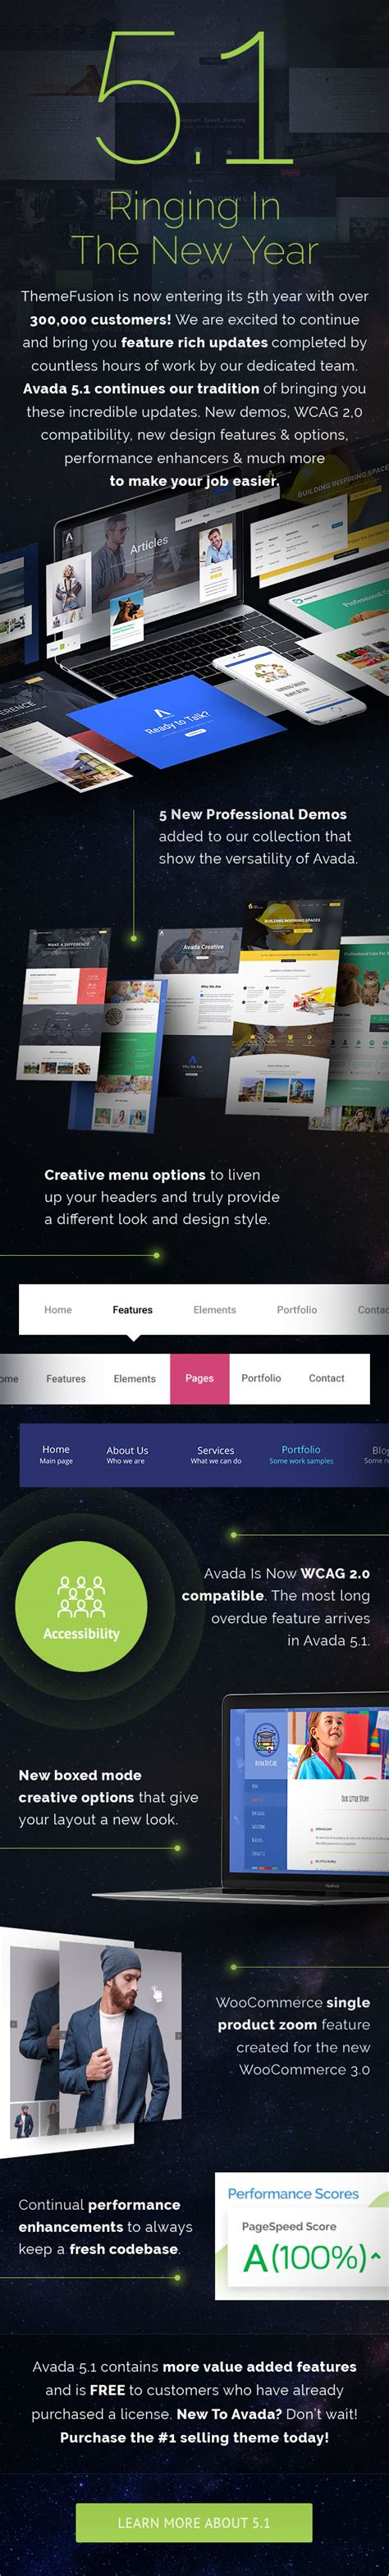 avada theme new update avada responsive multi purpose theme by themefusion